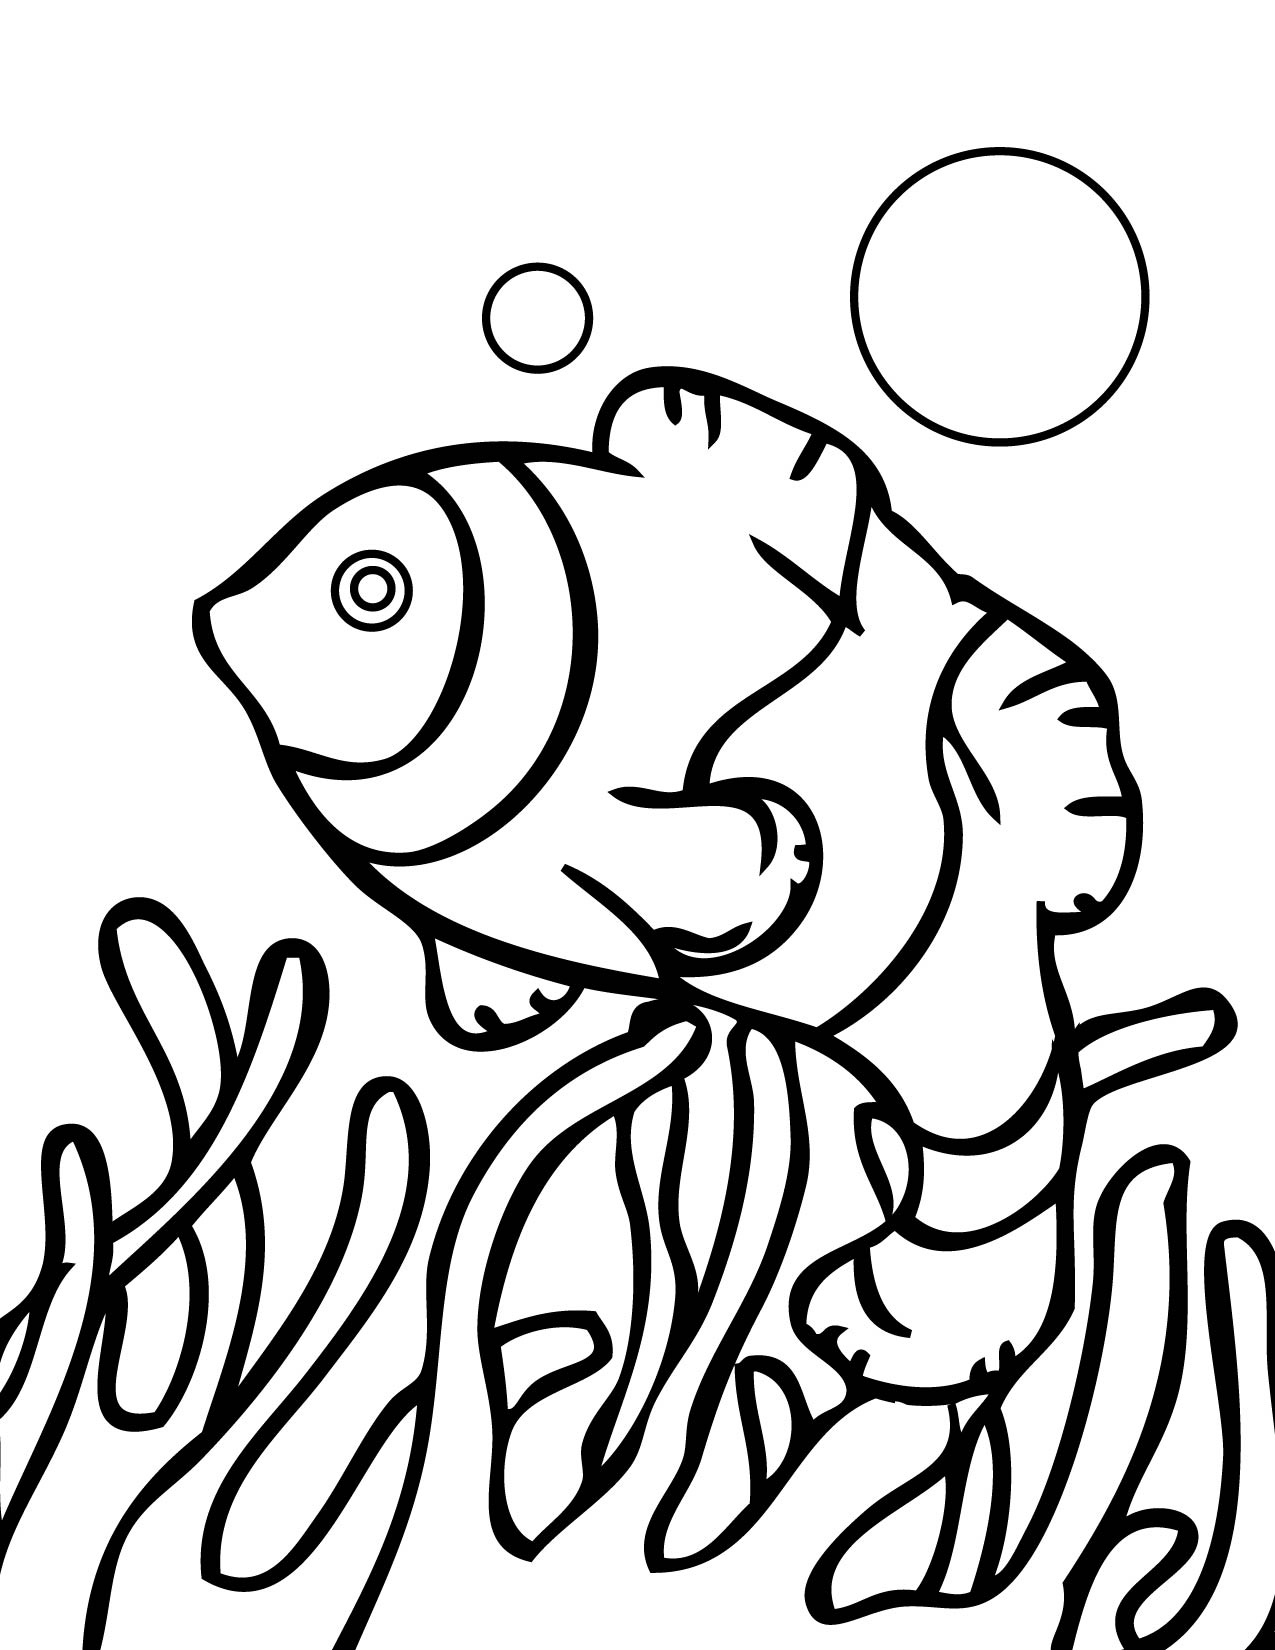 coral coloring pages coral reef coloring pages to download and print for free coloring coral pages